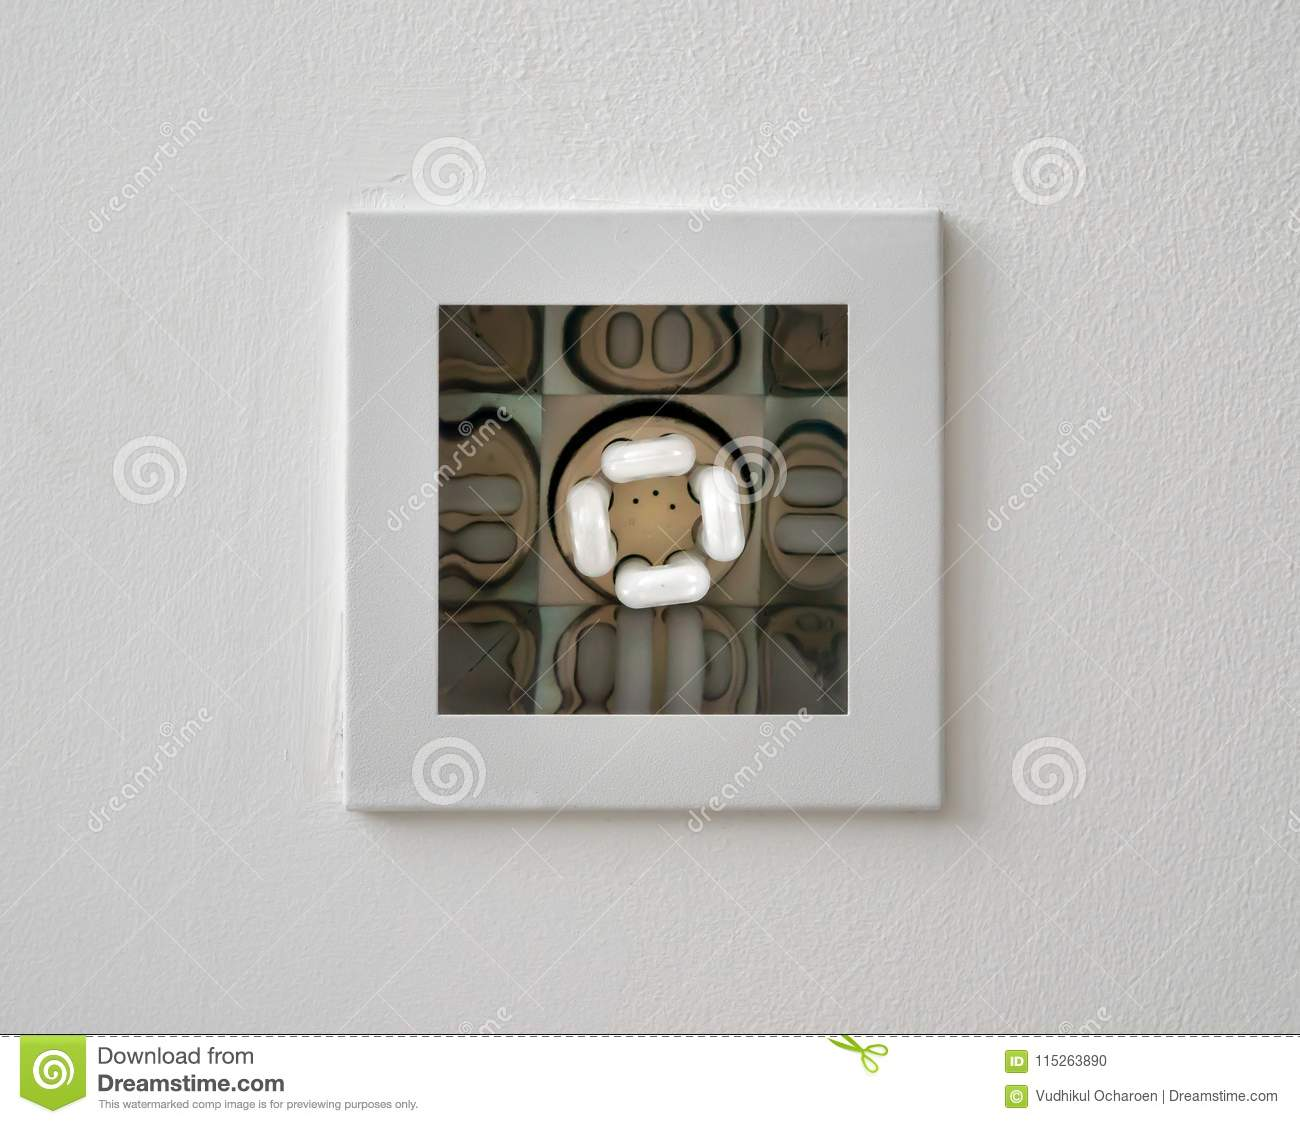 Closeup Of Square Light Recessed Lighting In Ceiling Stock